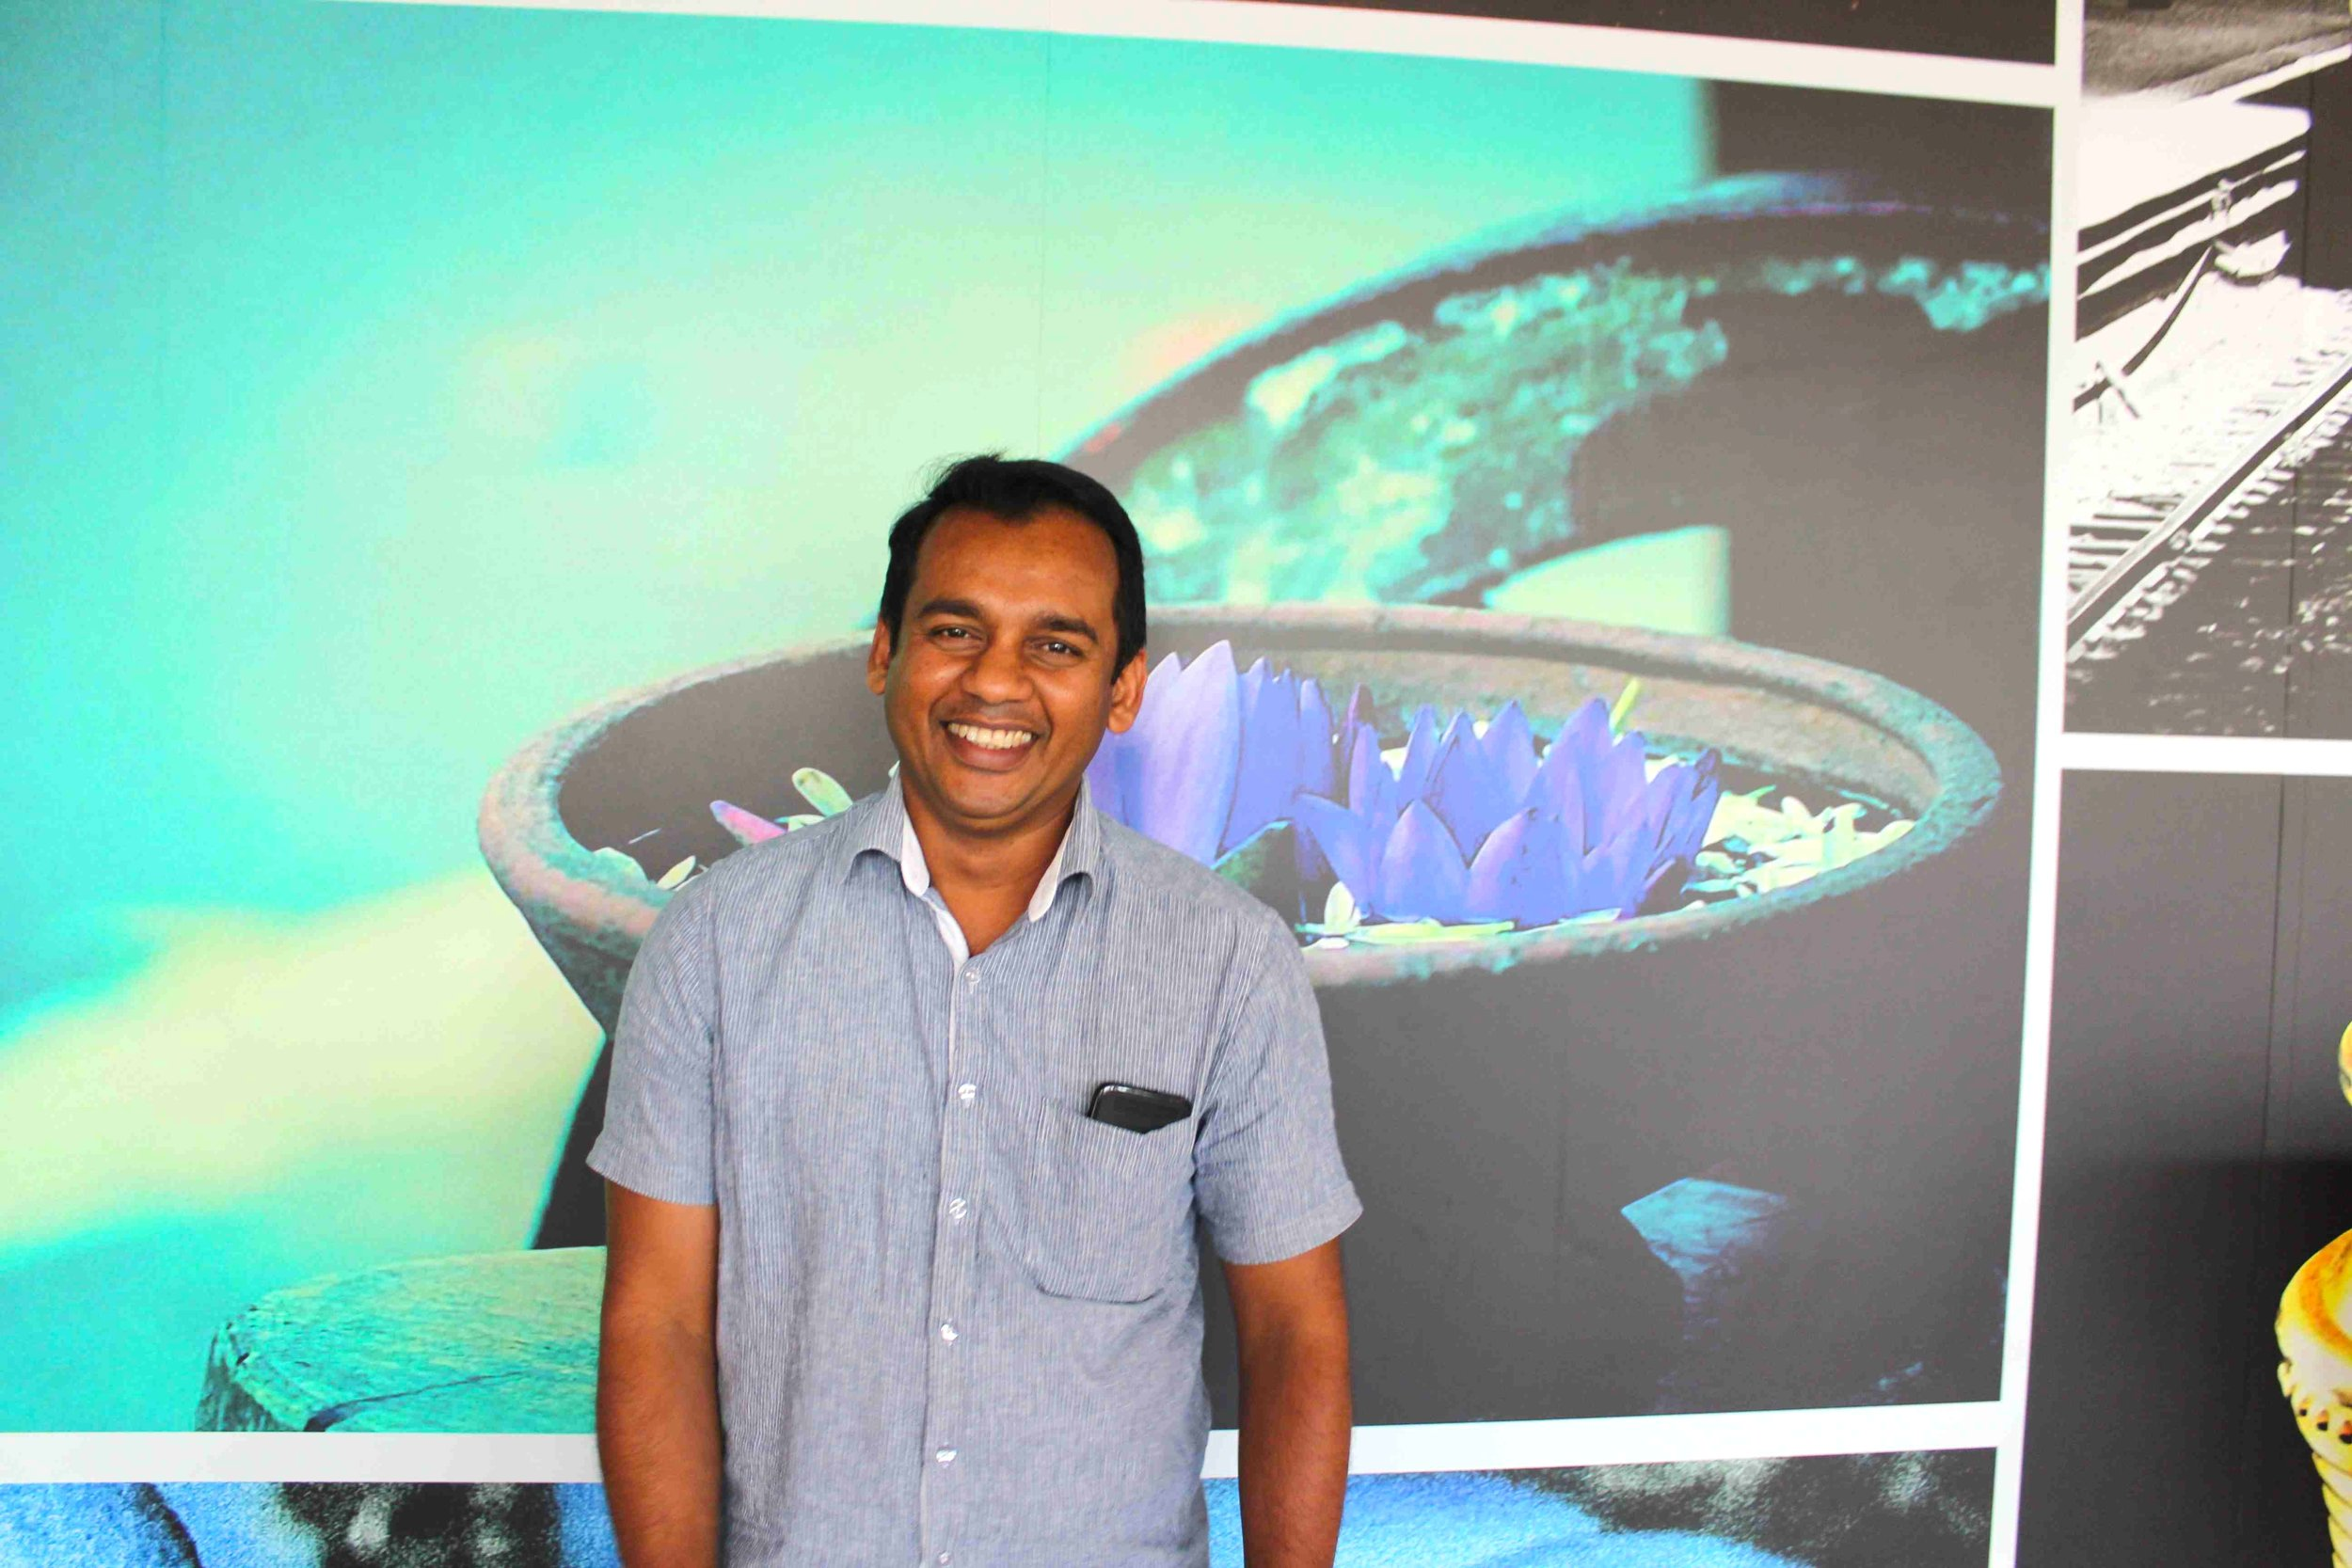 invite-to-paradise-sri-lanka-specialists-experts-travel-agent-tour-operator-chauffeur-guide-nishantha-1.jpg